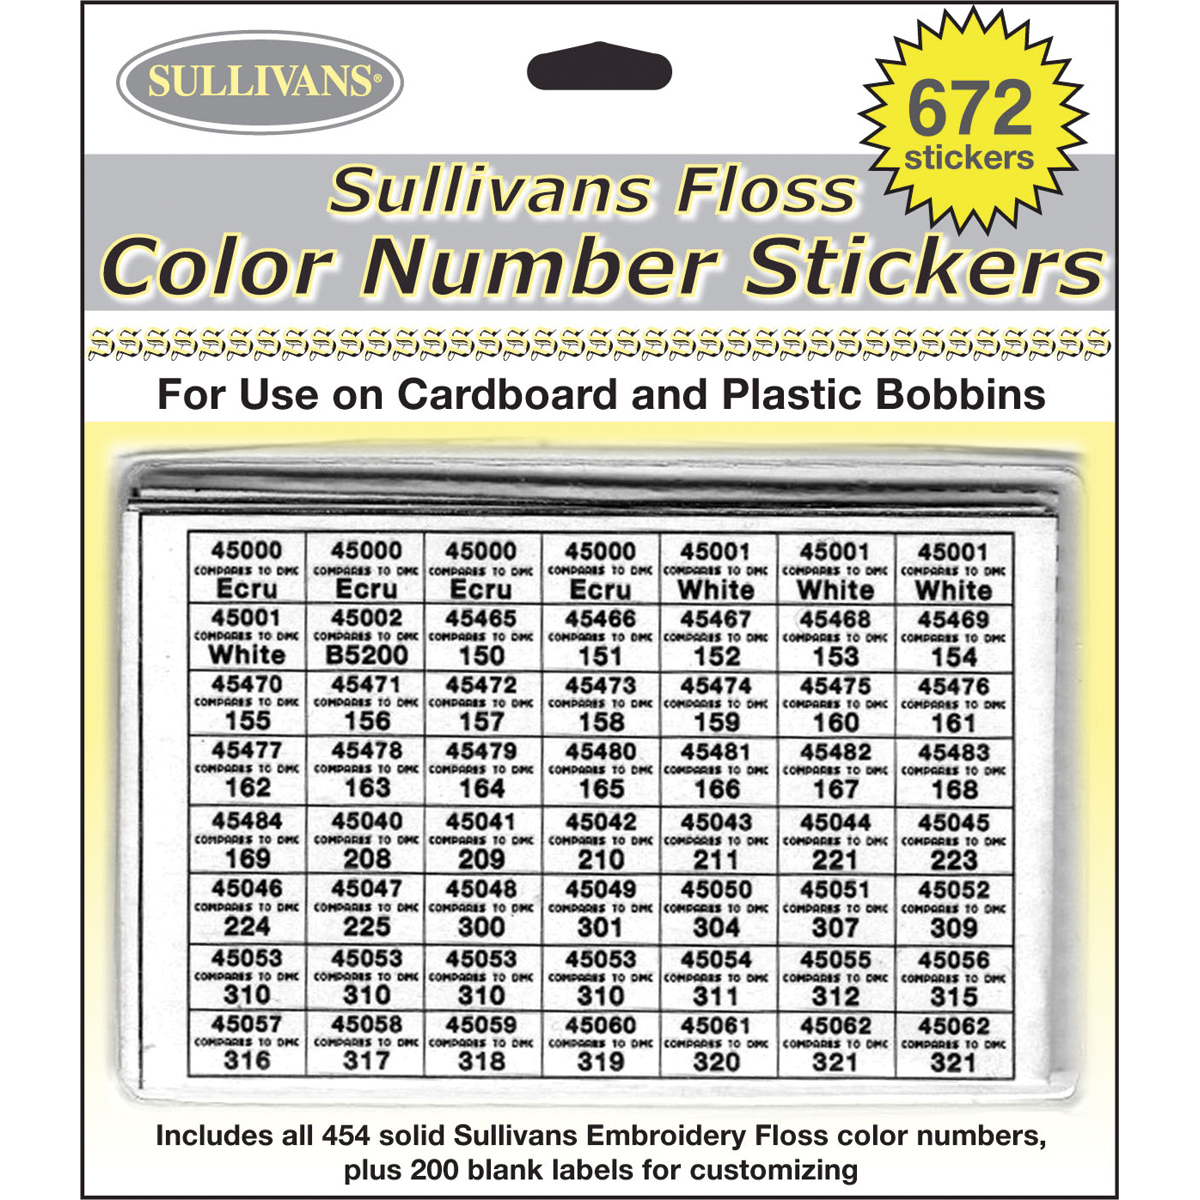 Sullivans Floss Color Number Stickers-672 Stickers